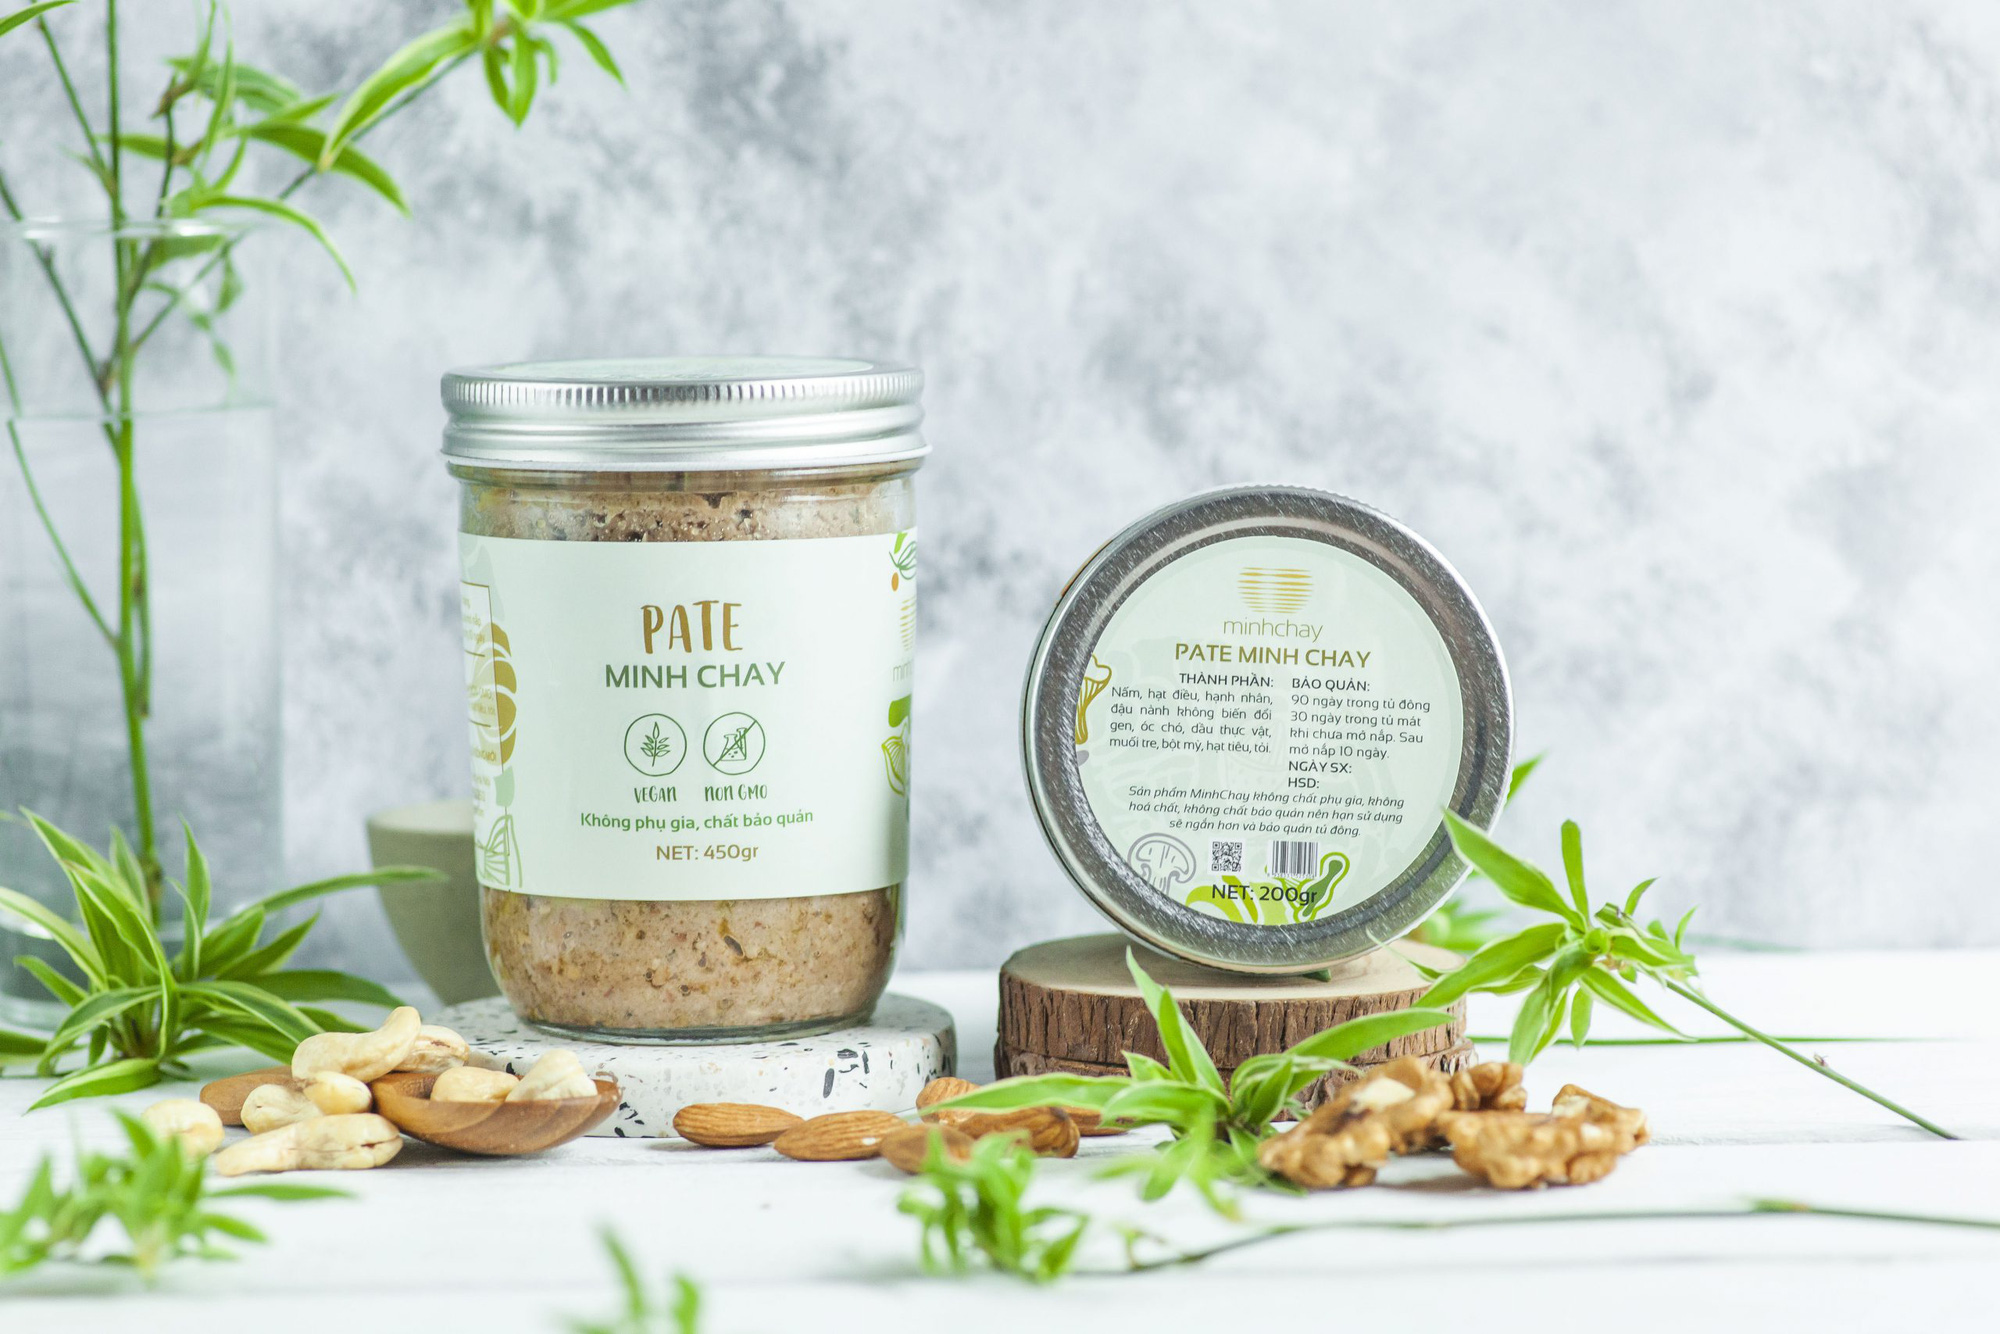 Vietnam health ministry warns of toxin found in locally-made vegan pâté